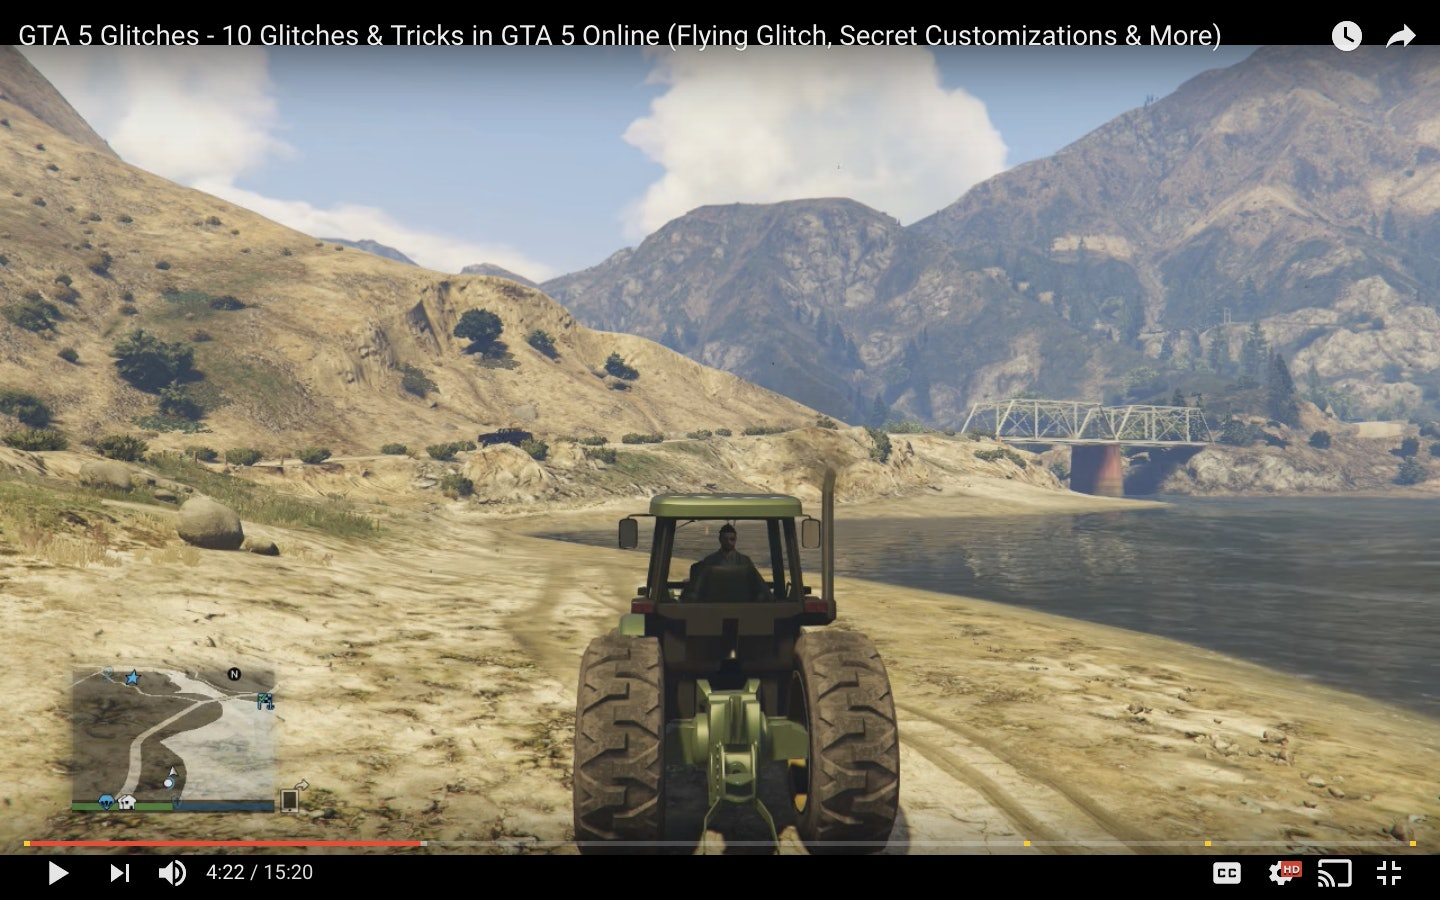 GTA 5 Online' Cheats, Hacks, Glitches and Exploits: How to make